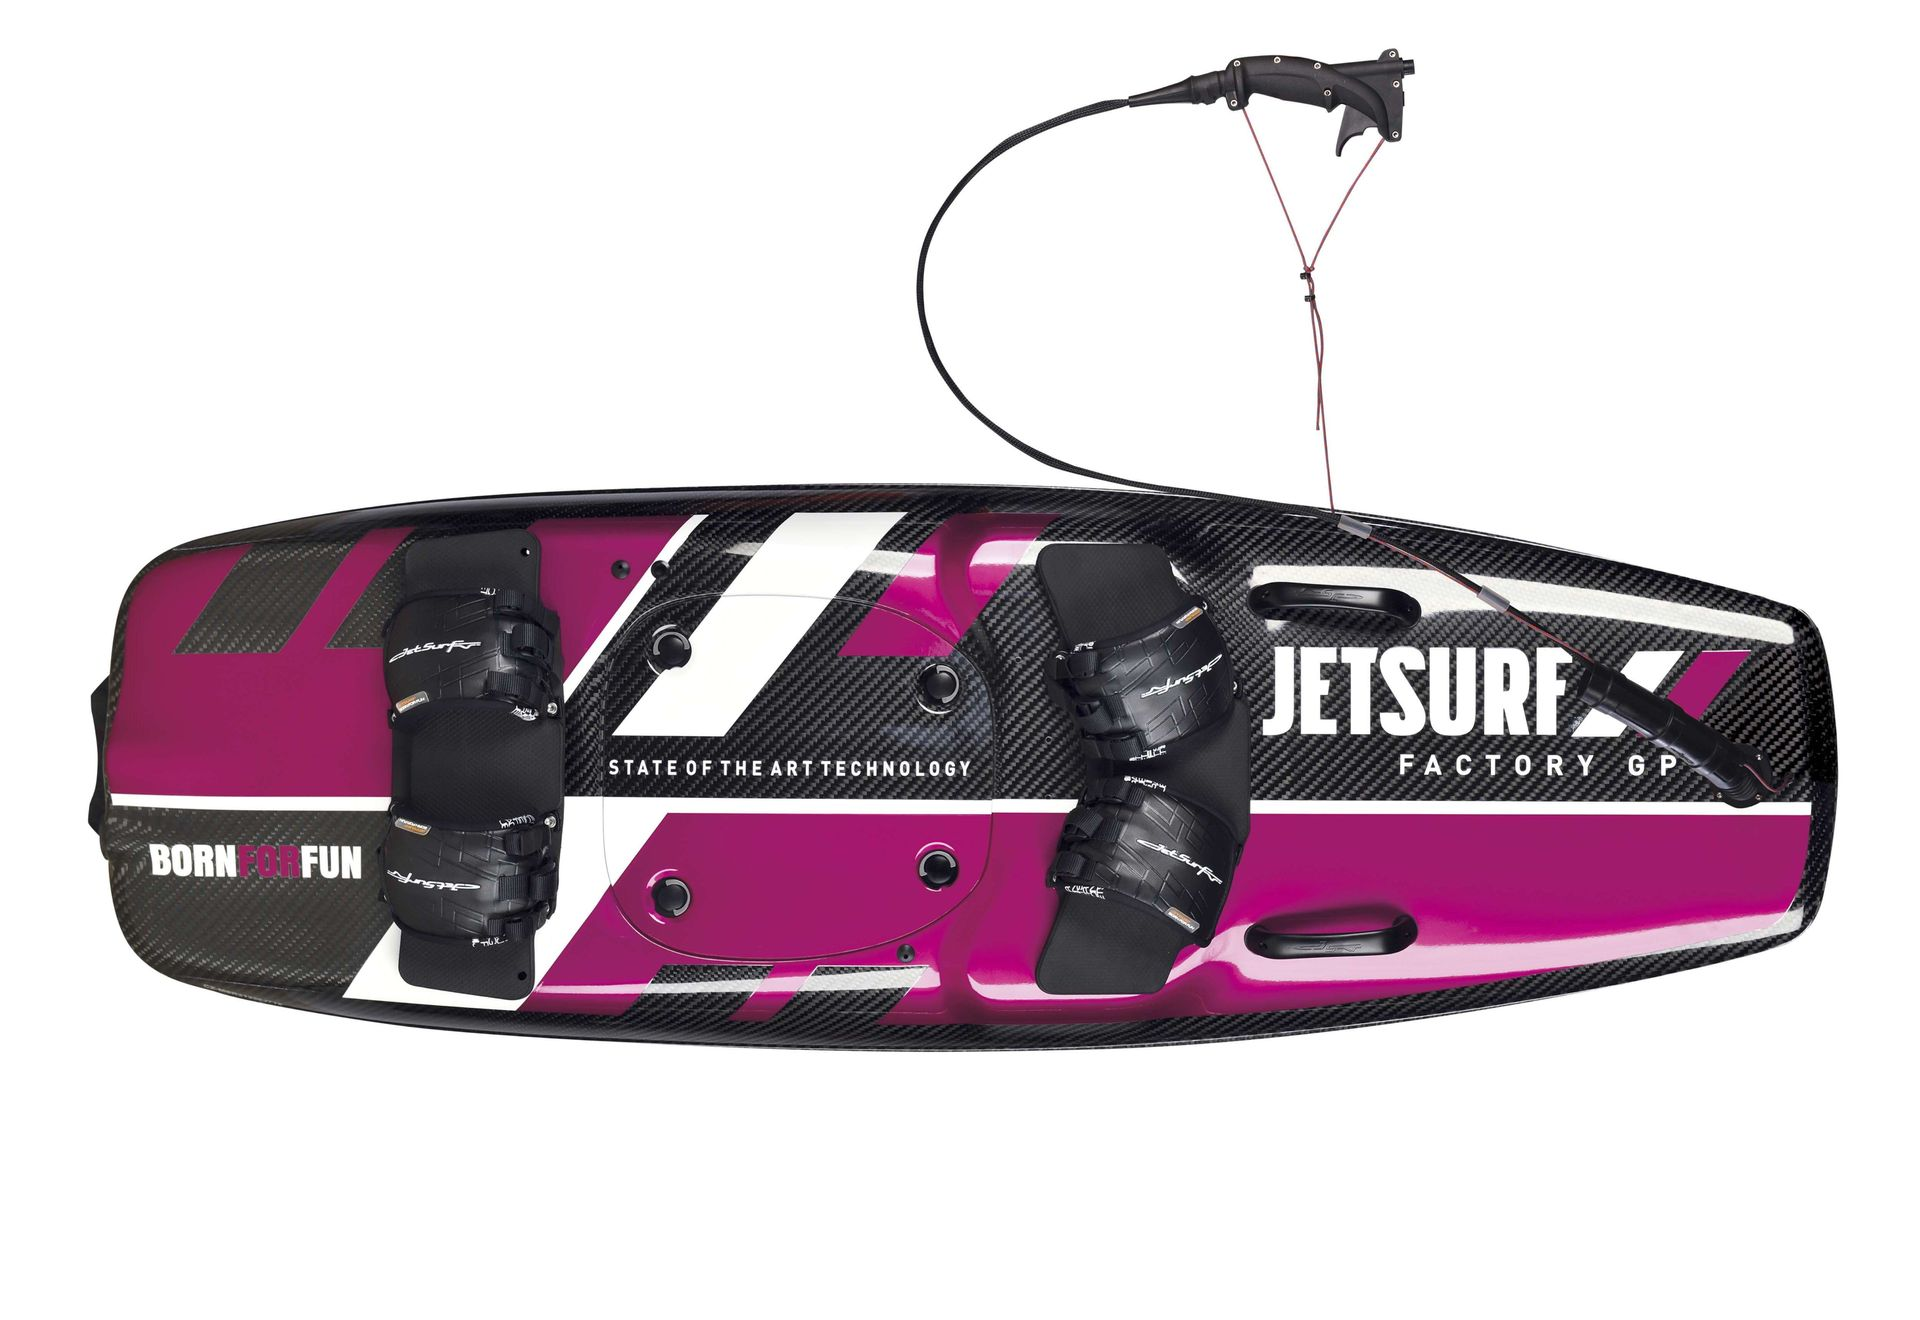 JetSurf Motorised Surfboard Factory GP